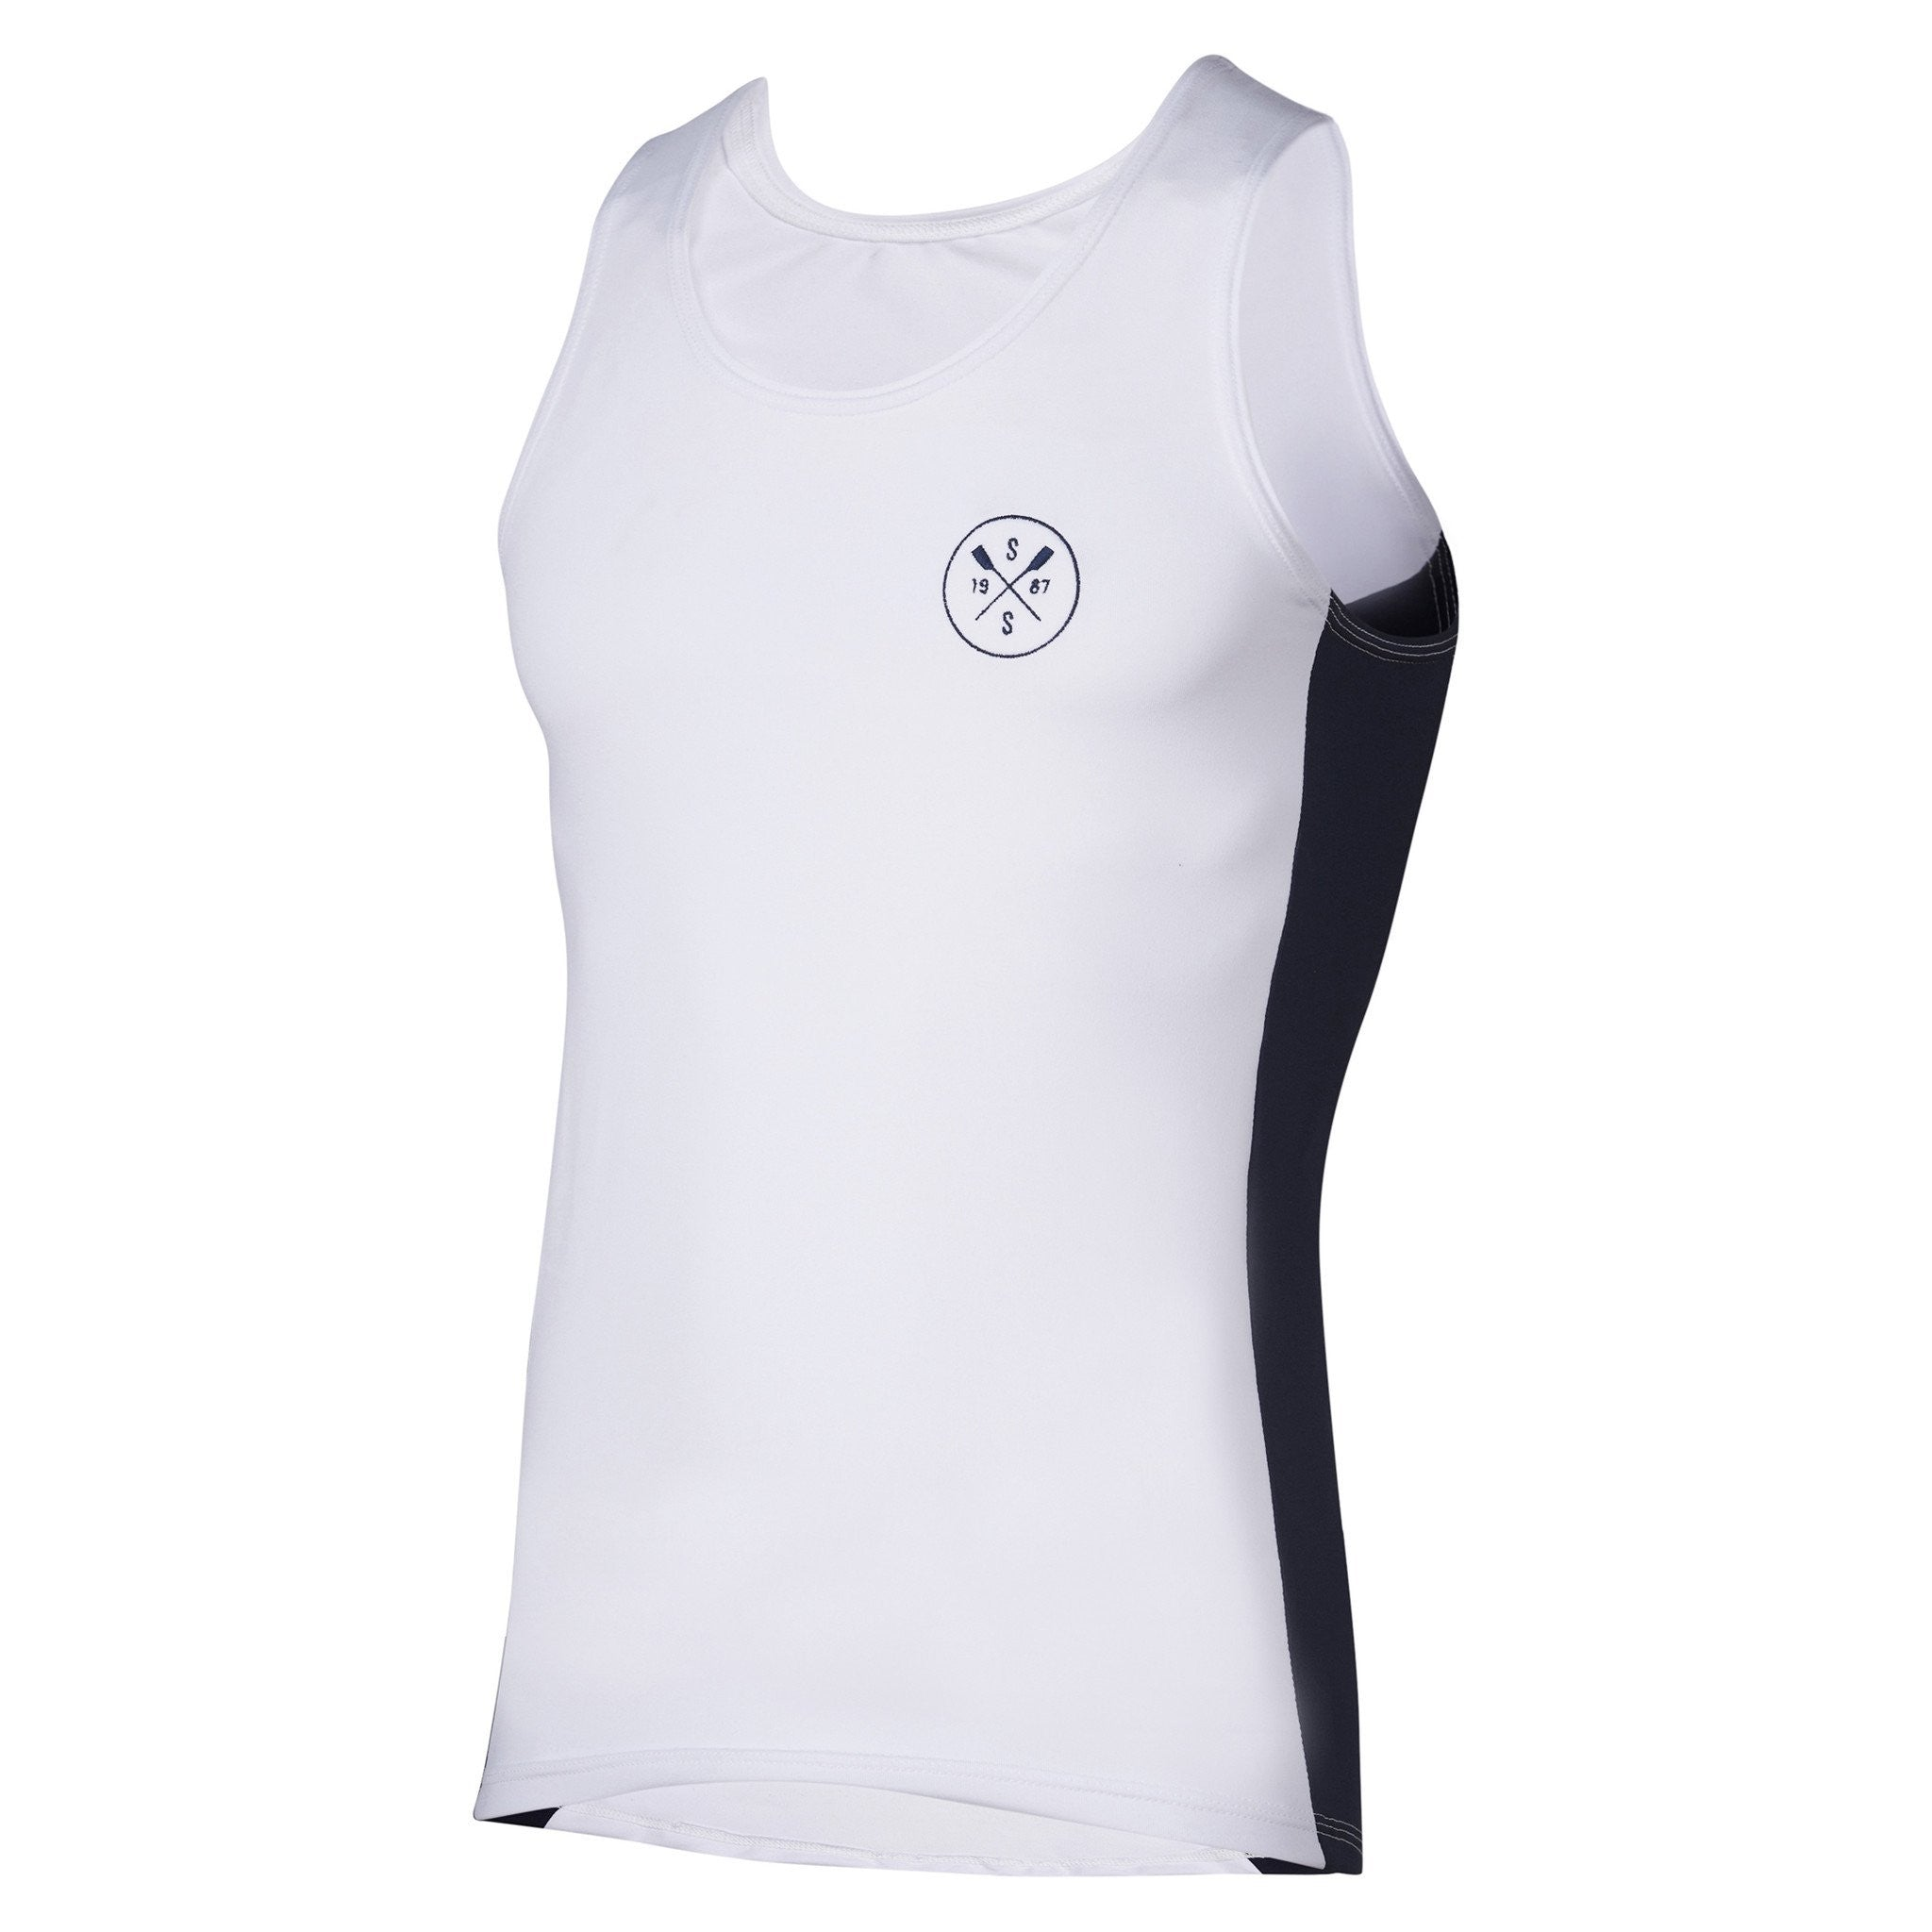 Sew Sporty Fitted Tech Tank - Dryflex Poly Spandex (White)